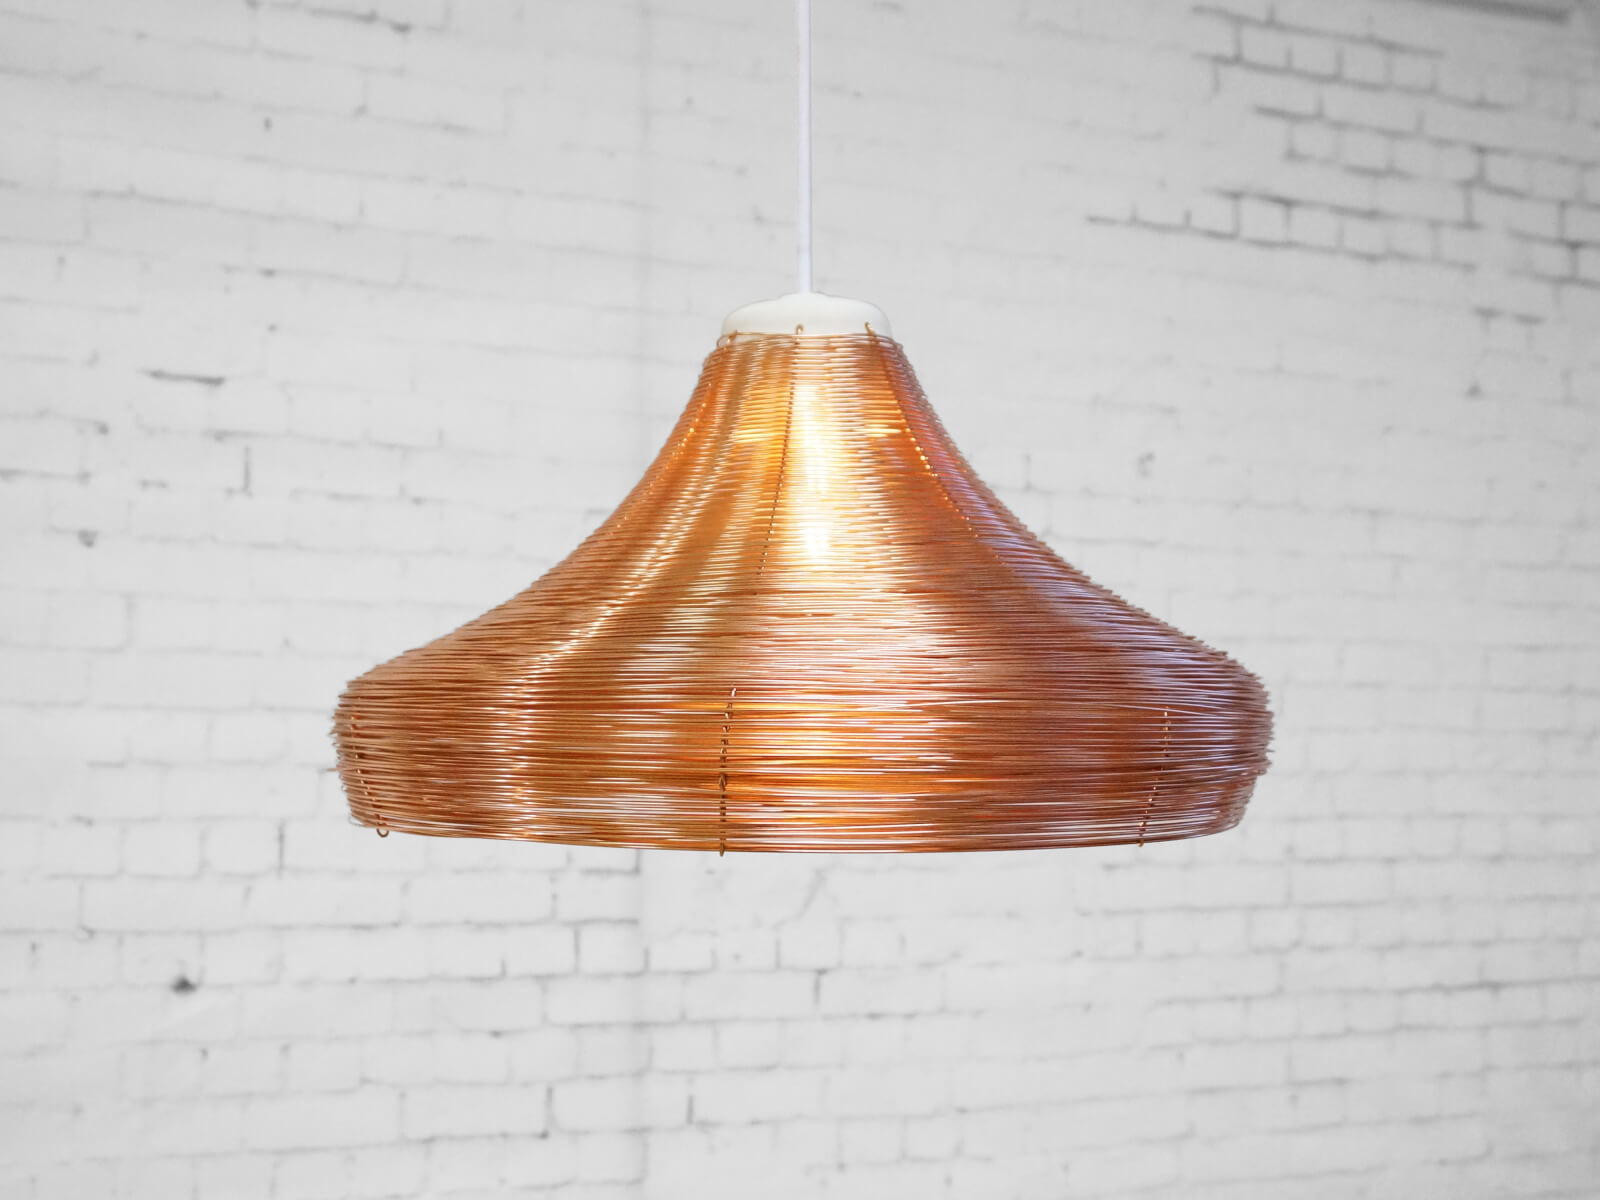 dixon chandelier pendant by modern product pack lamp from tom instrument beat wooden design kitchen white light fixtures